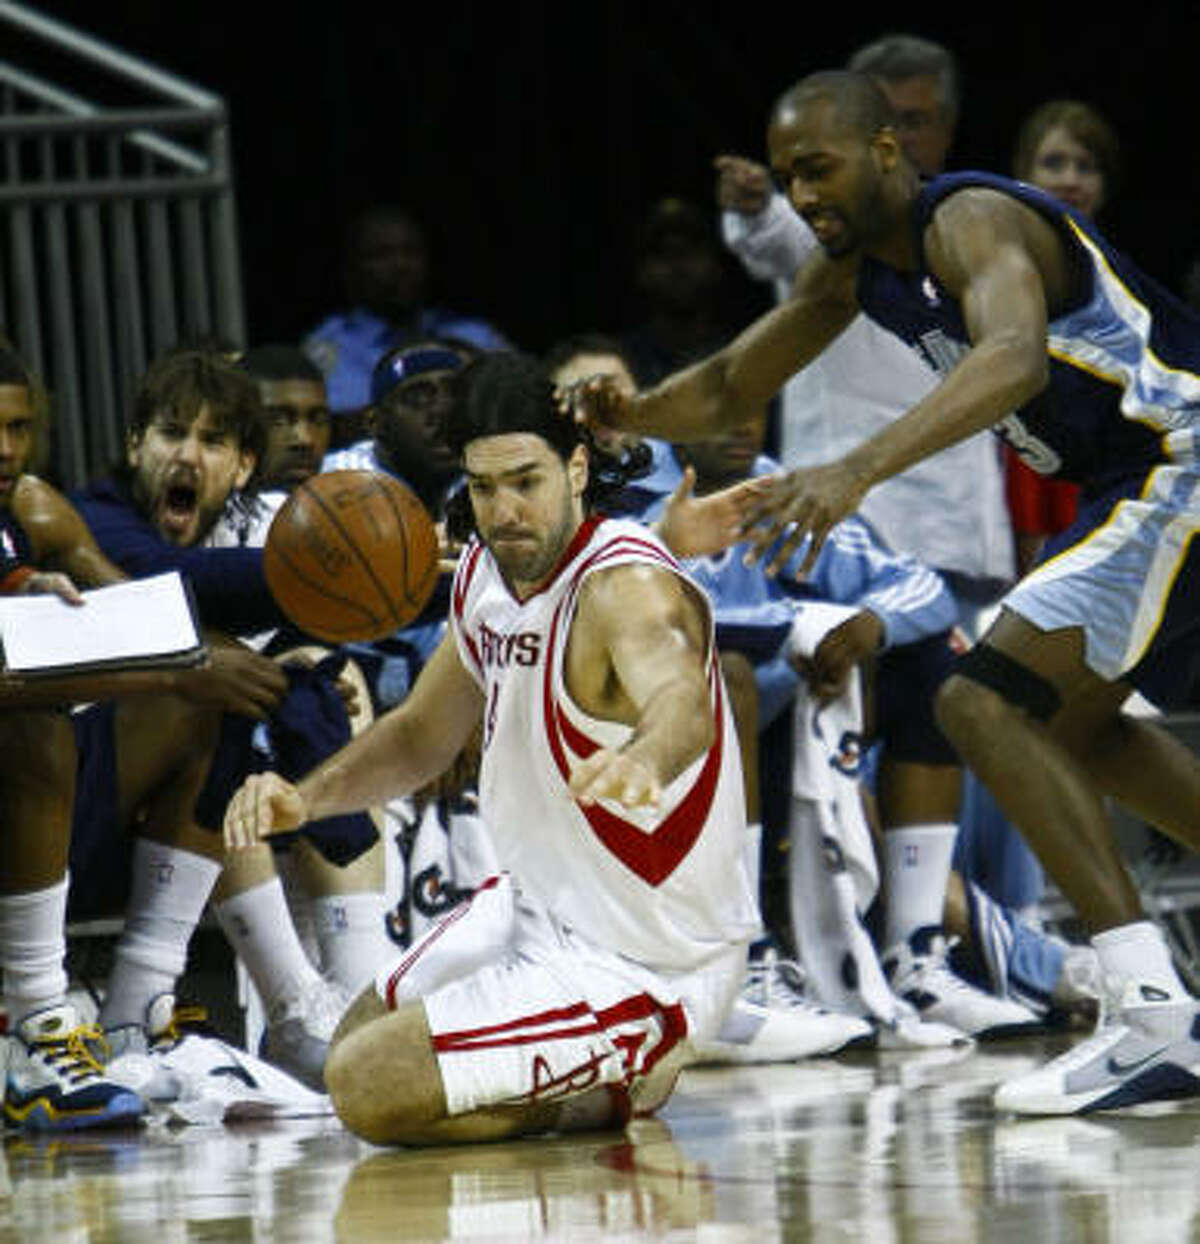 Luis Scola (4) goes for the steal against Grizzlies forward Quinton Ross. Scola scored 18 points and had 14 rebounds in 29 minutes.